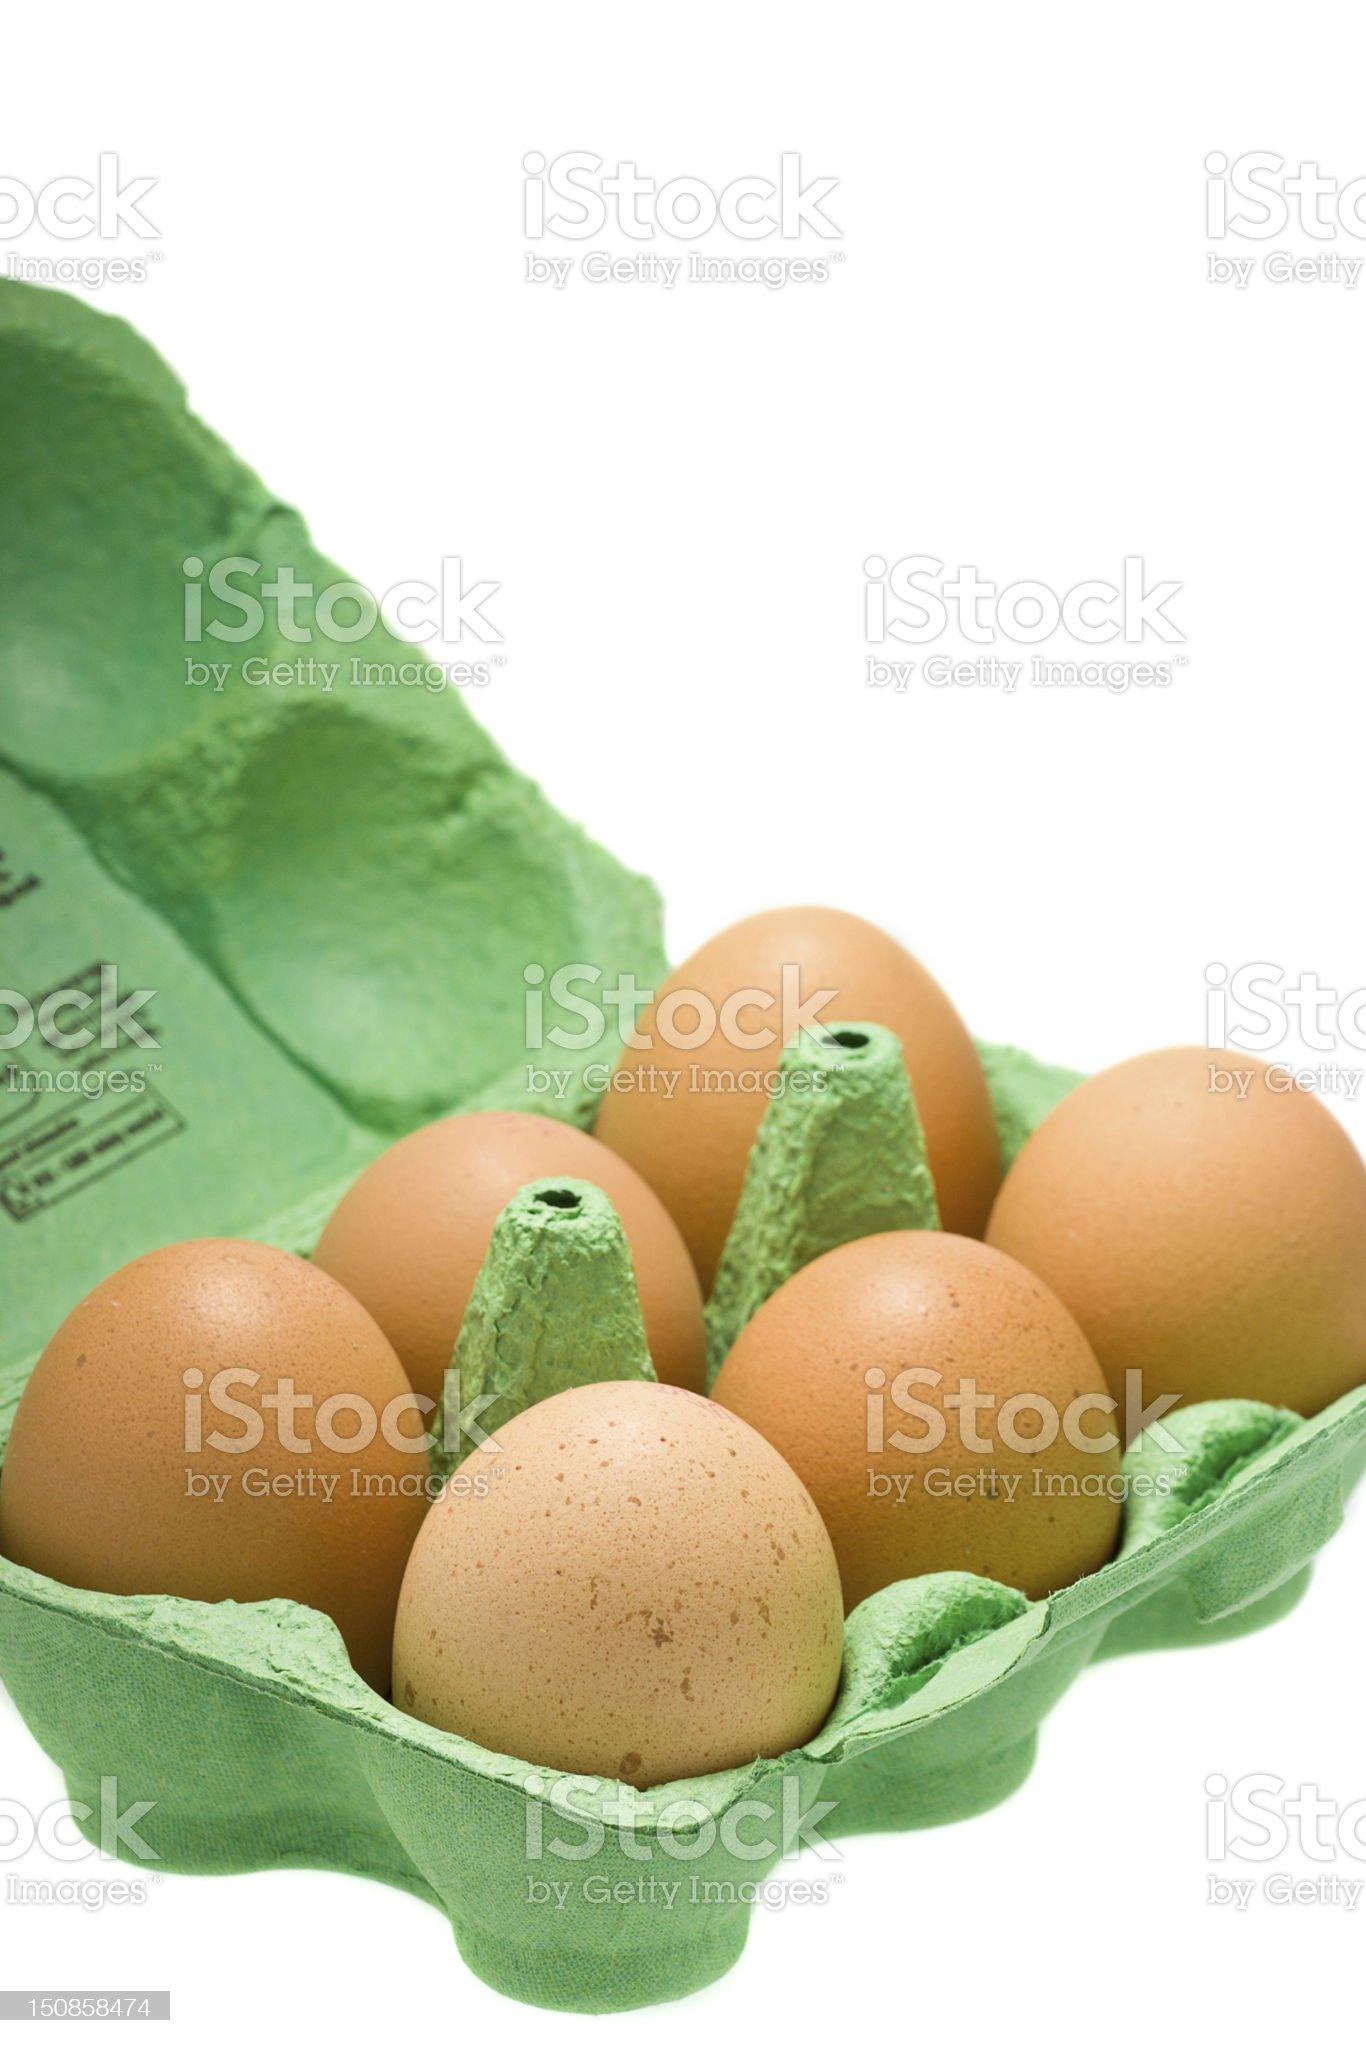 Eggs in carton isolated on white royalty-free stock photo